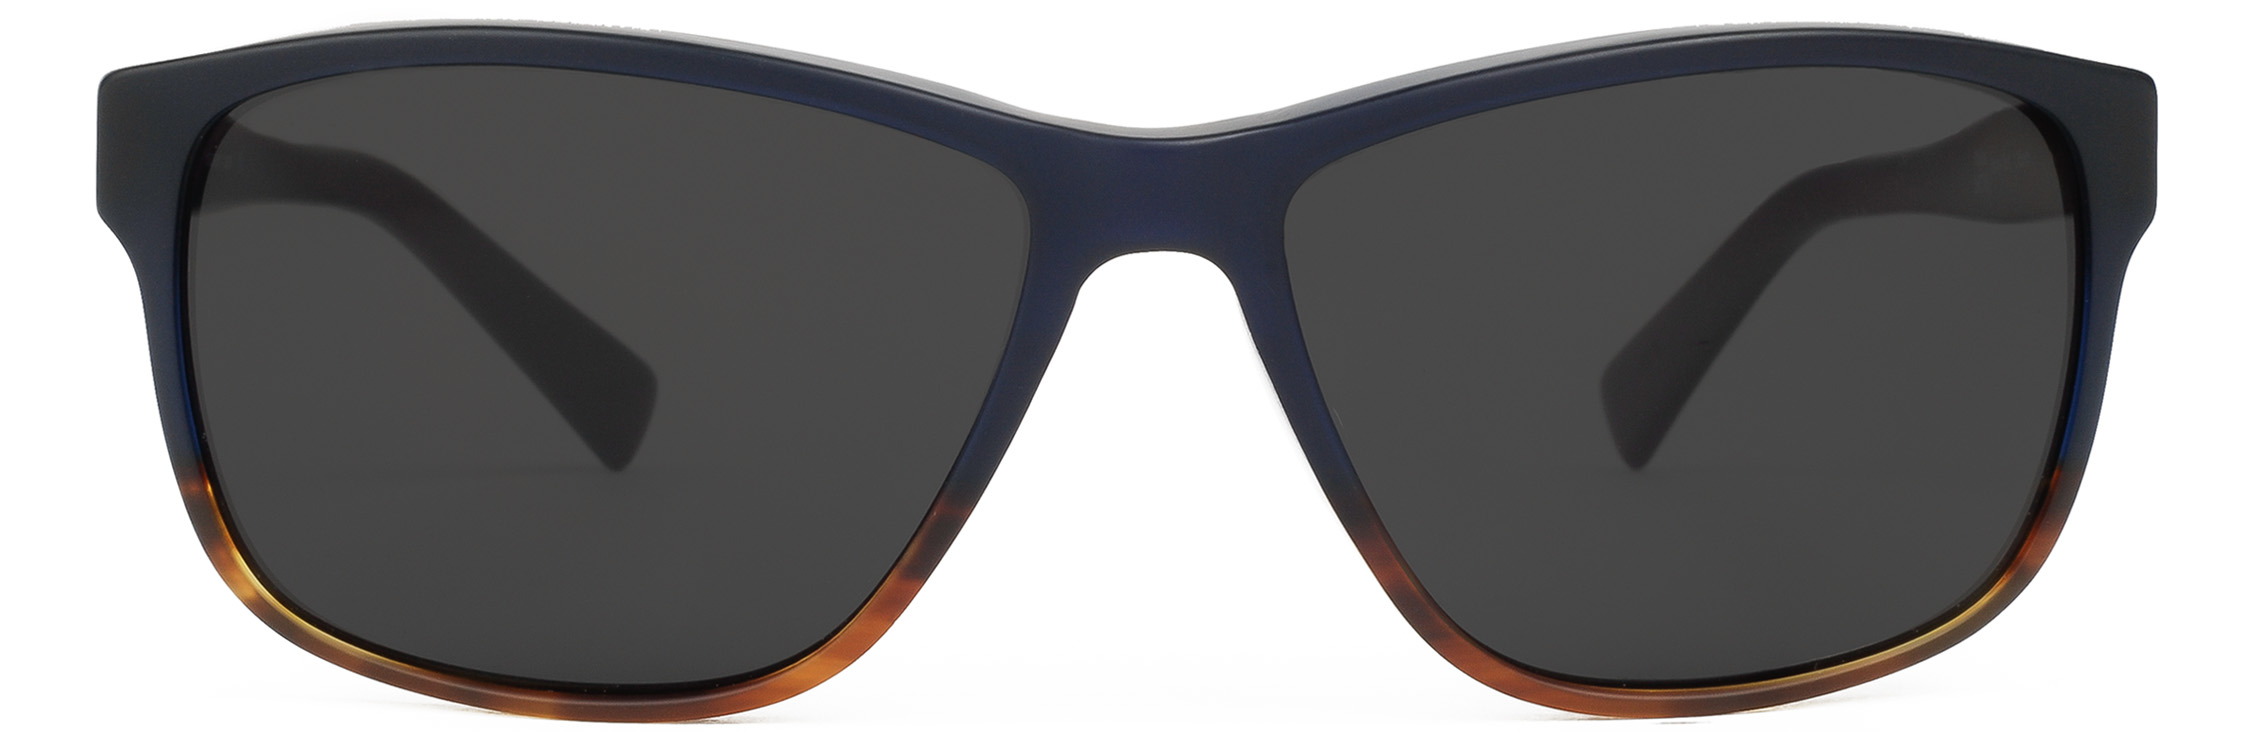 Navy/Tort (Polarized)